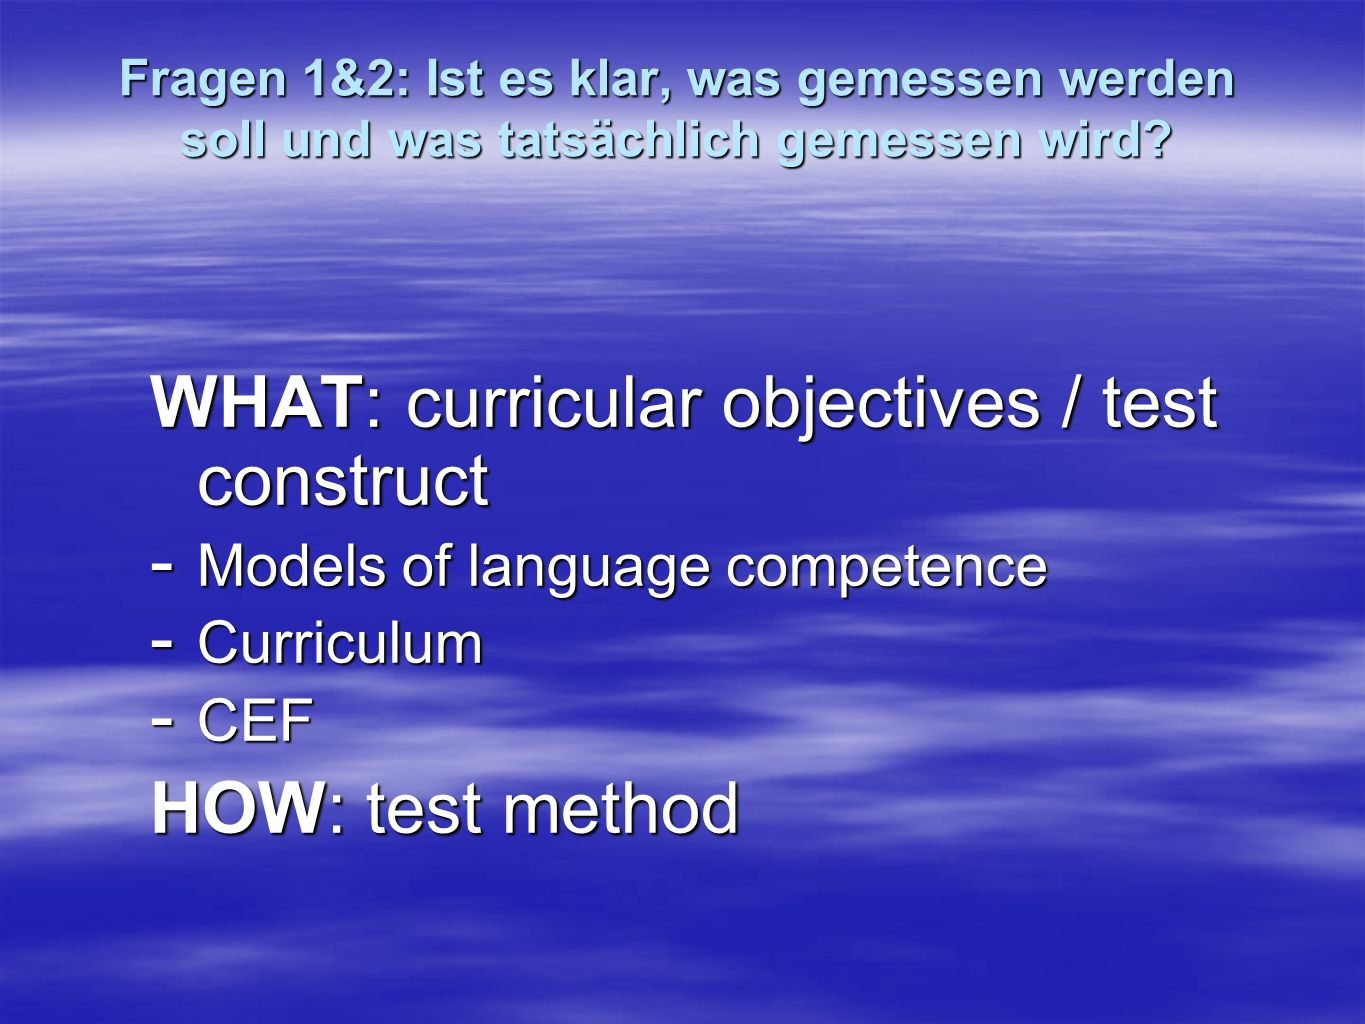 WHAT: curricular objectives / test construct